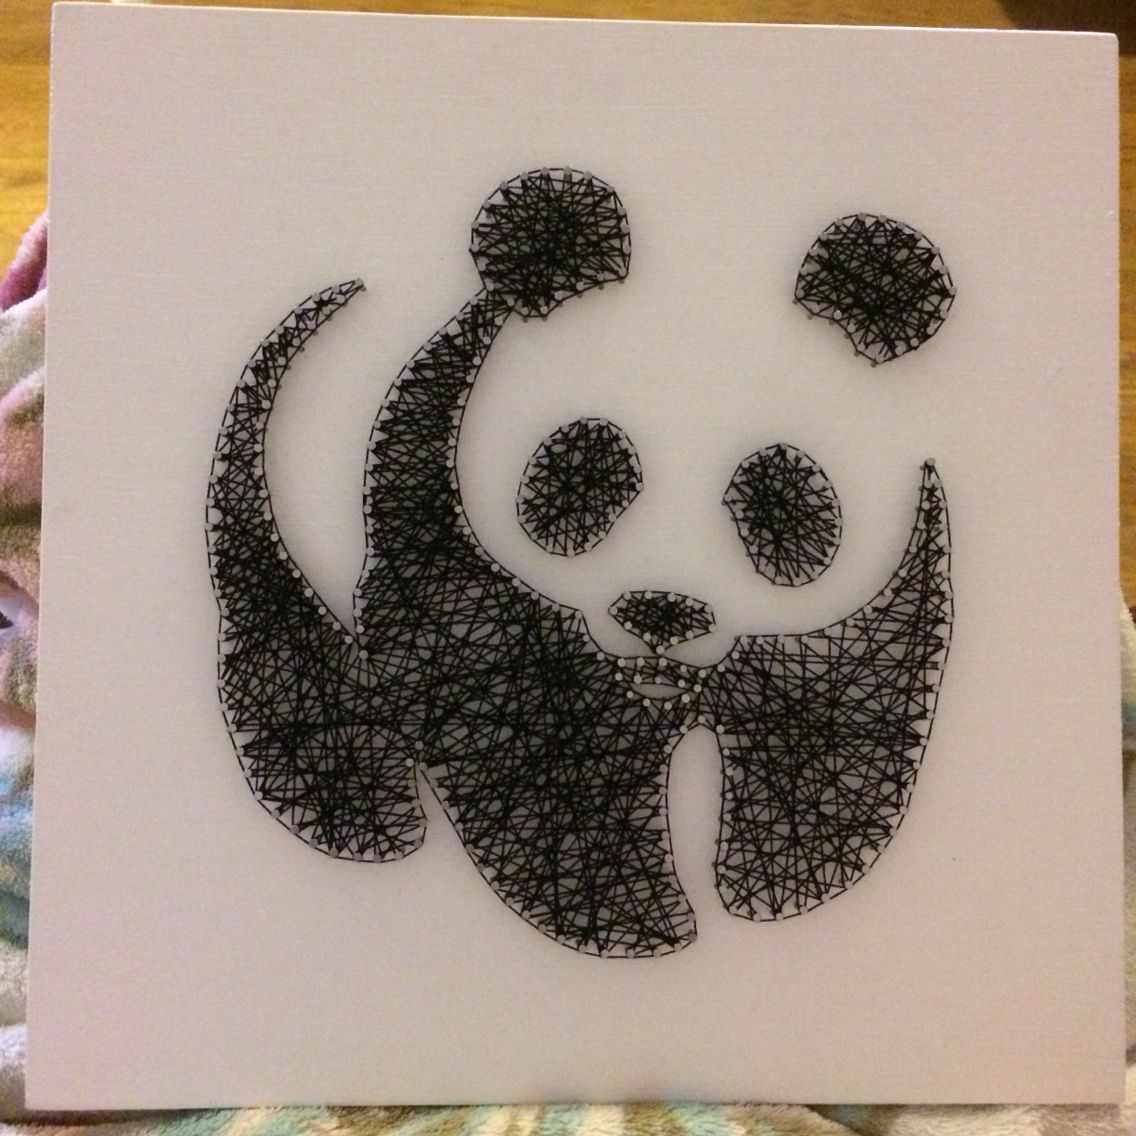 String art panda, 30x30cm | Crafts | Pinterest | Fadenkunst ...